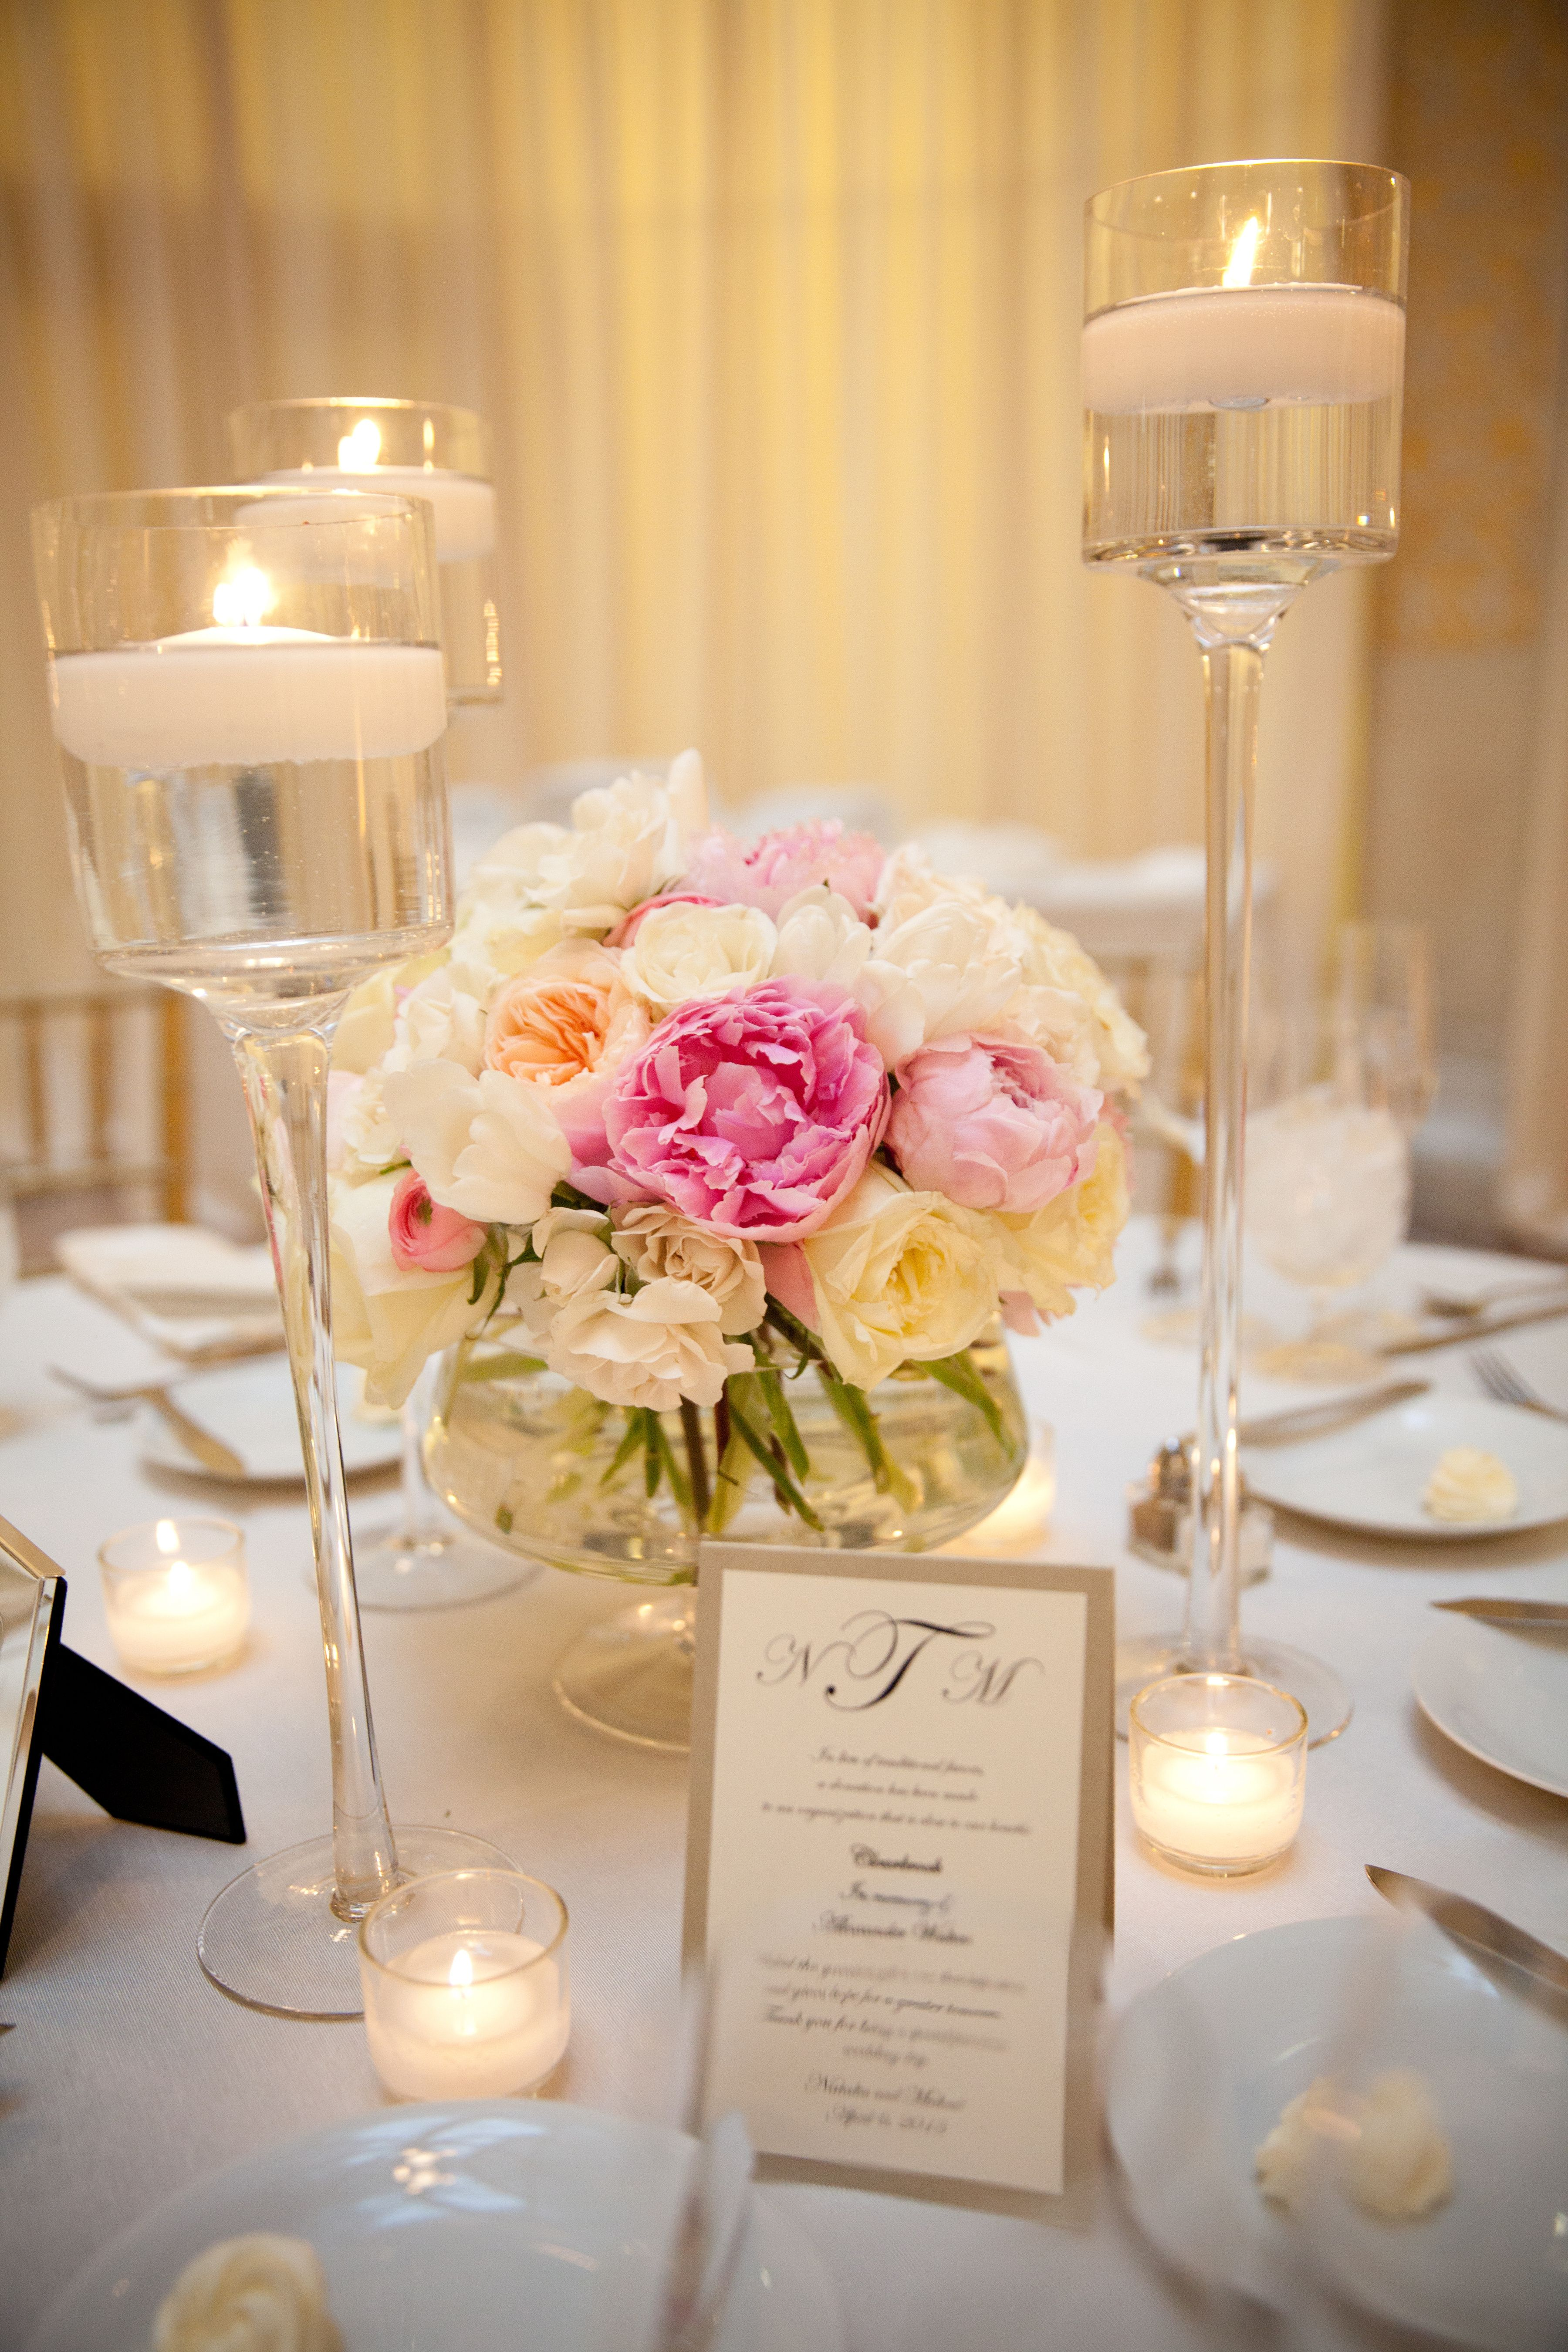 Fabulous Floating Candle Ideas For Weddings Centrotavola